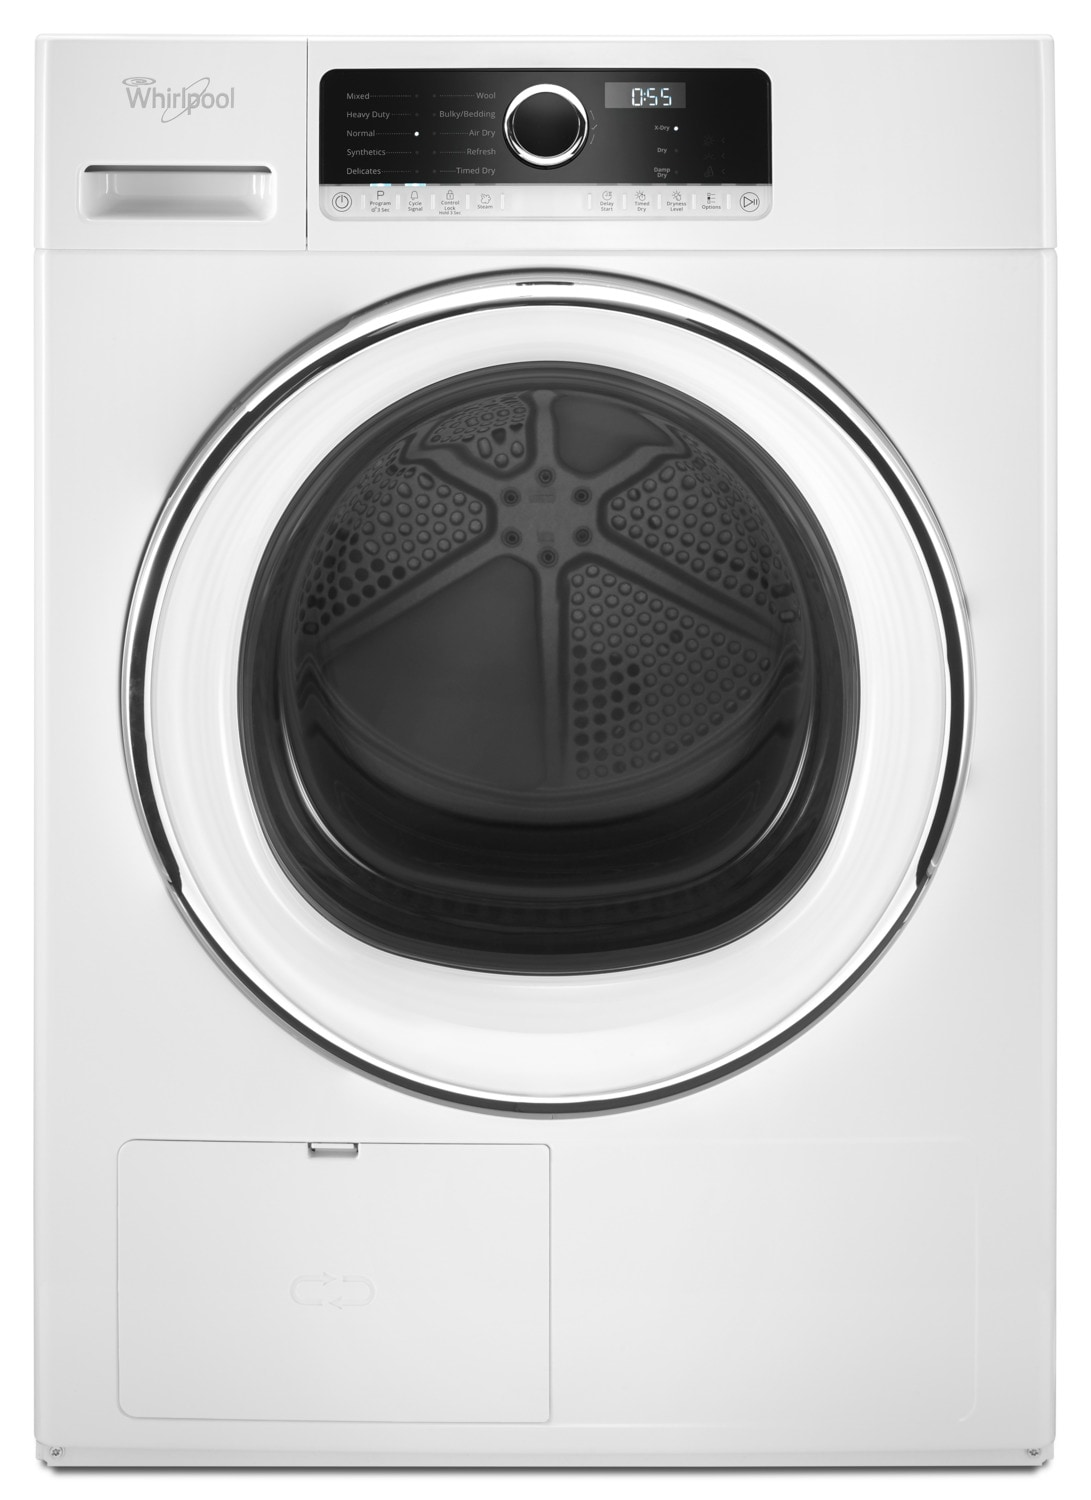 Whirlpool White Electric Dryer (4.3 Cu. Ft.) - YWHD5090GW